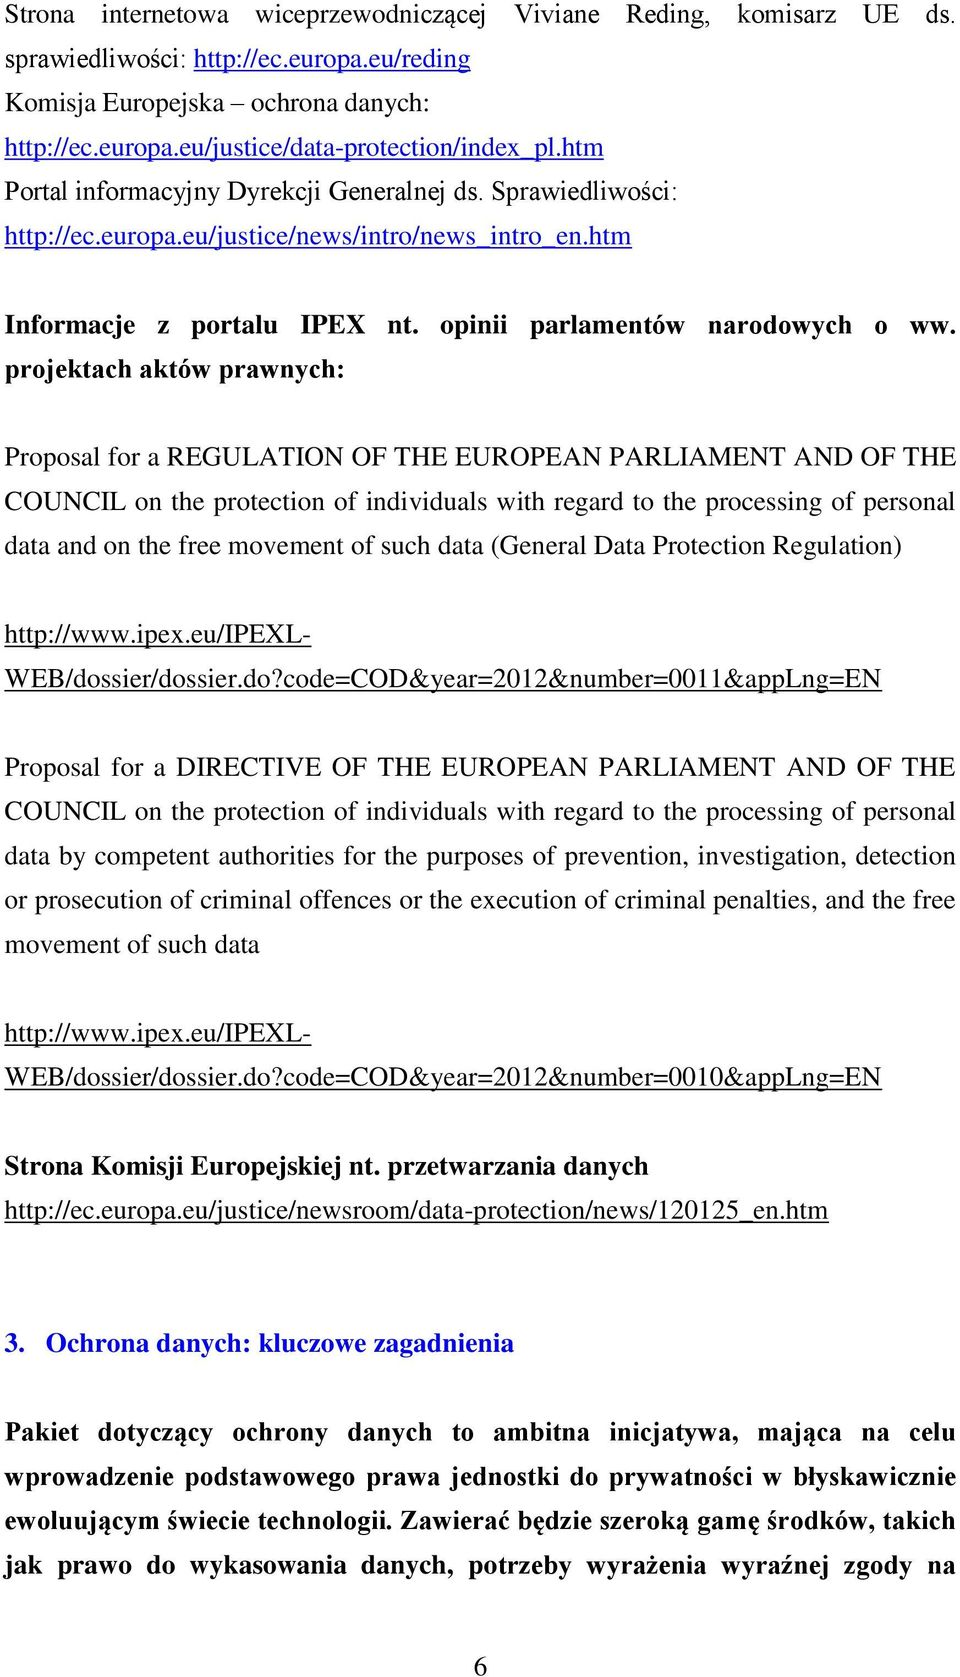 projektach aktów prawnych: Proposal for a REGULATION OF THE EUROPEAN PARLIAMENT AND OF THE COUNCIL on the protection of individuals with regard to the processing of personal data and on the free